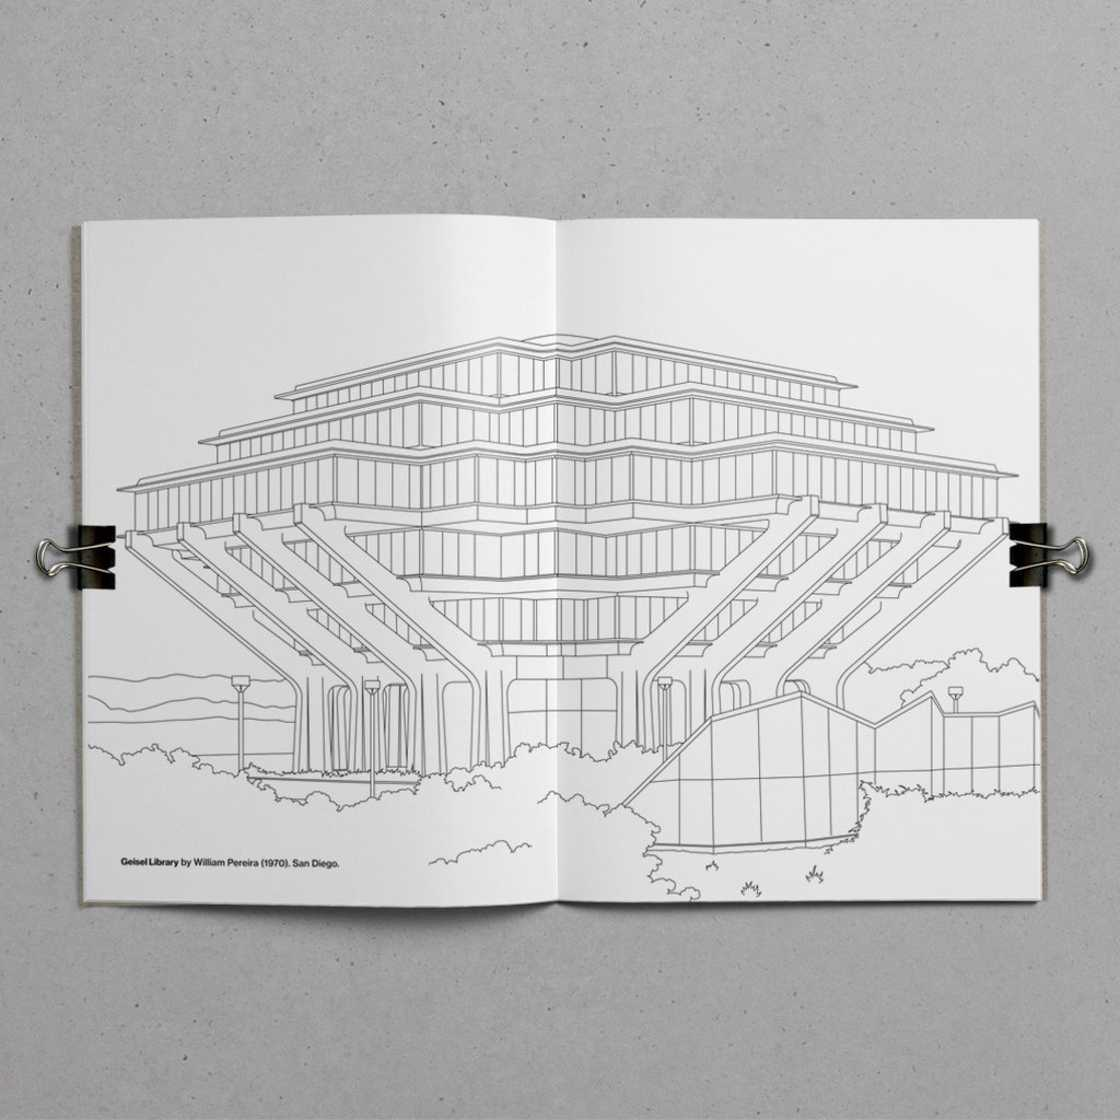 Brutalist Colouring Book - The coloring book of brutalist architecture